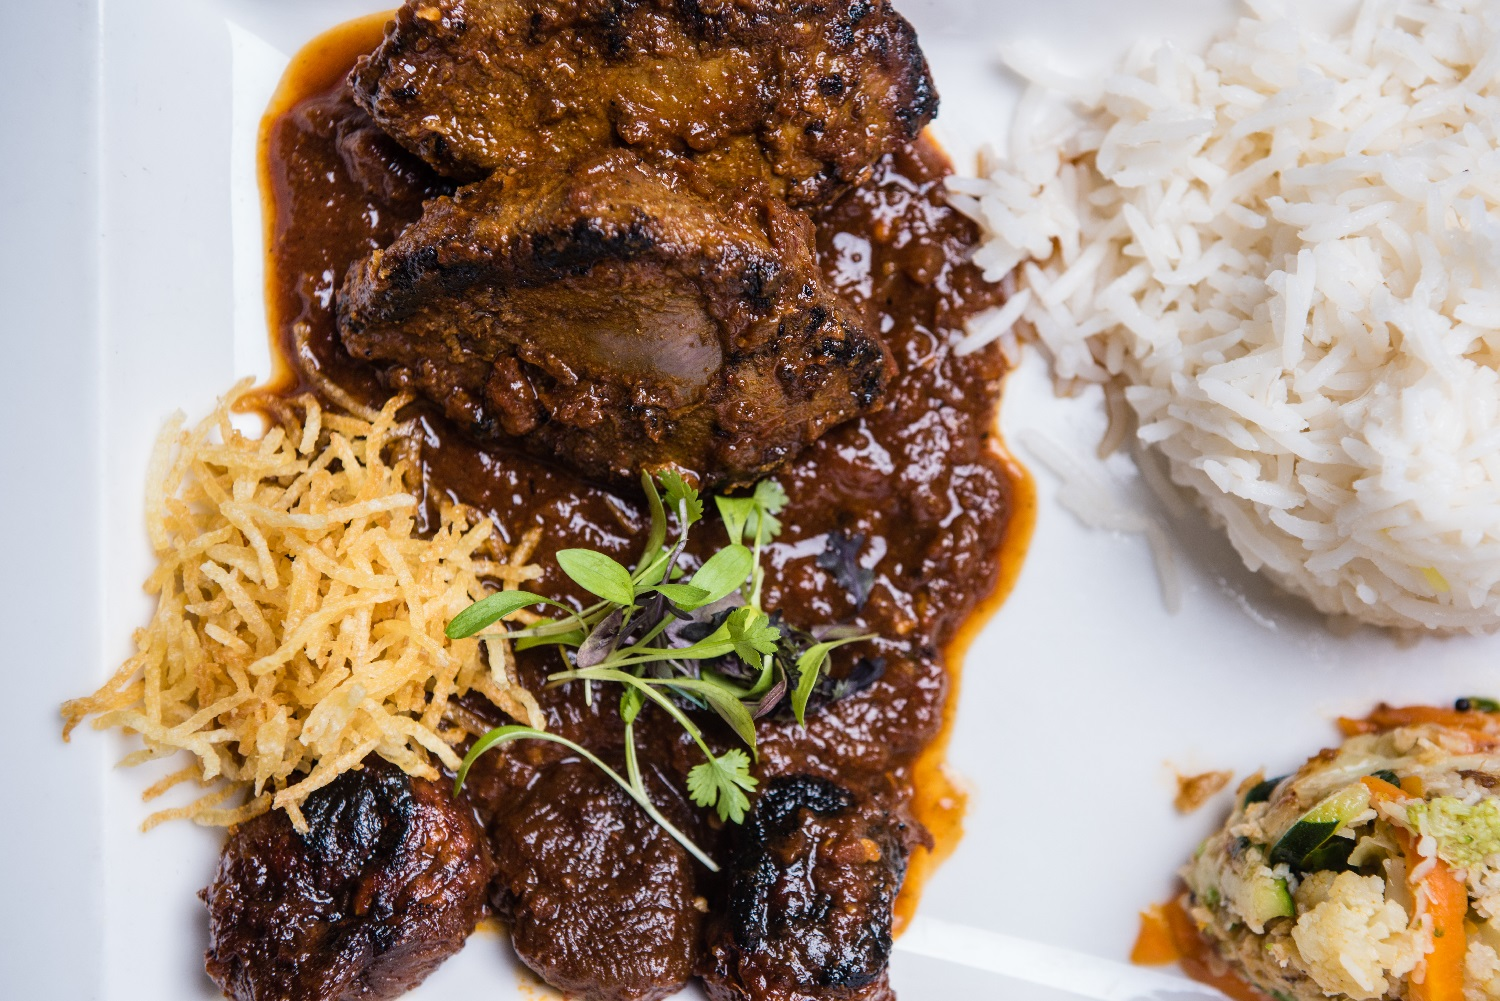 Cafe Spice Namaste grouse curry dish with rice